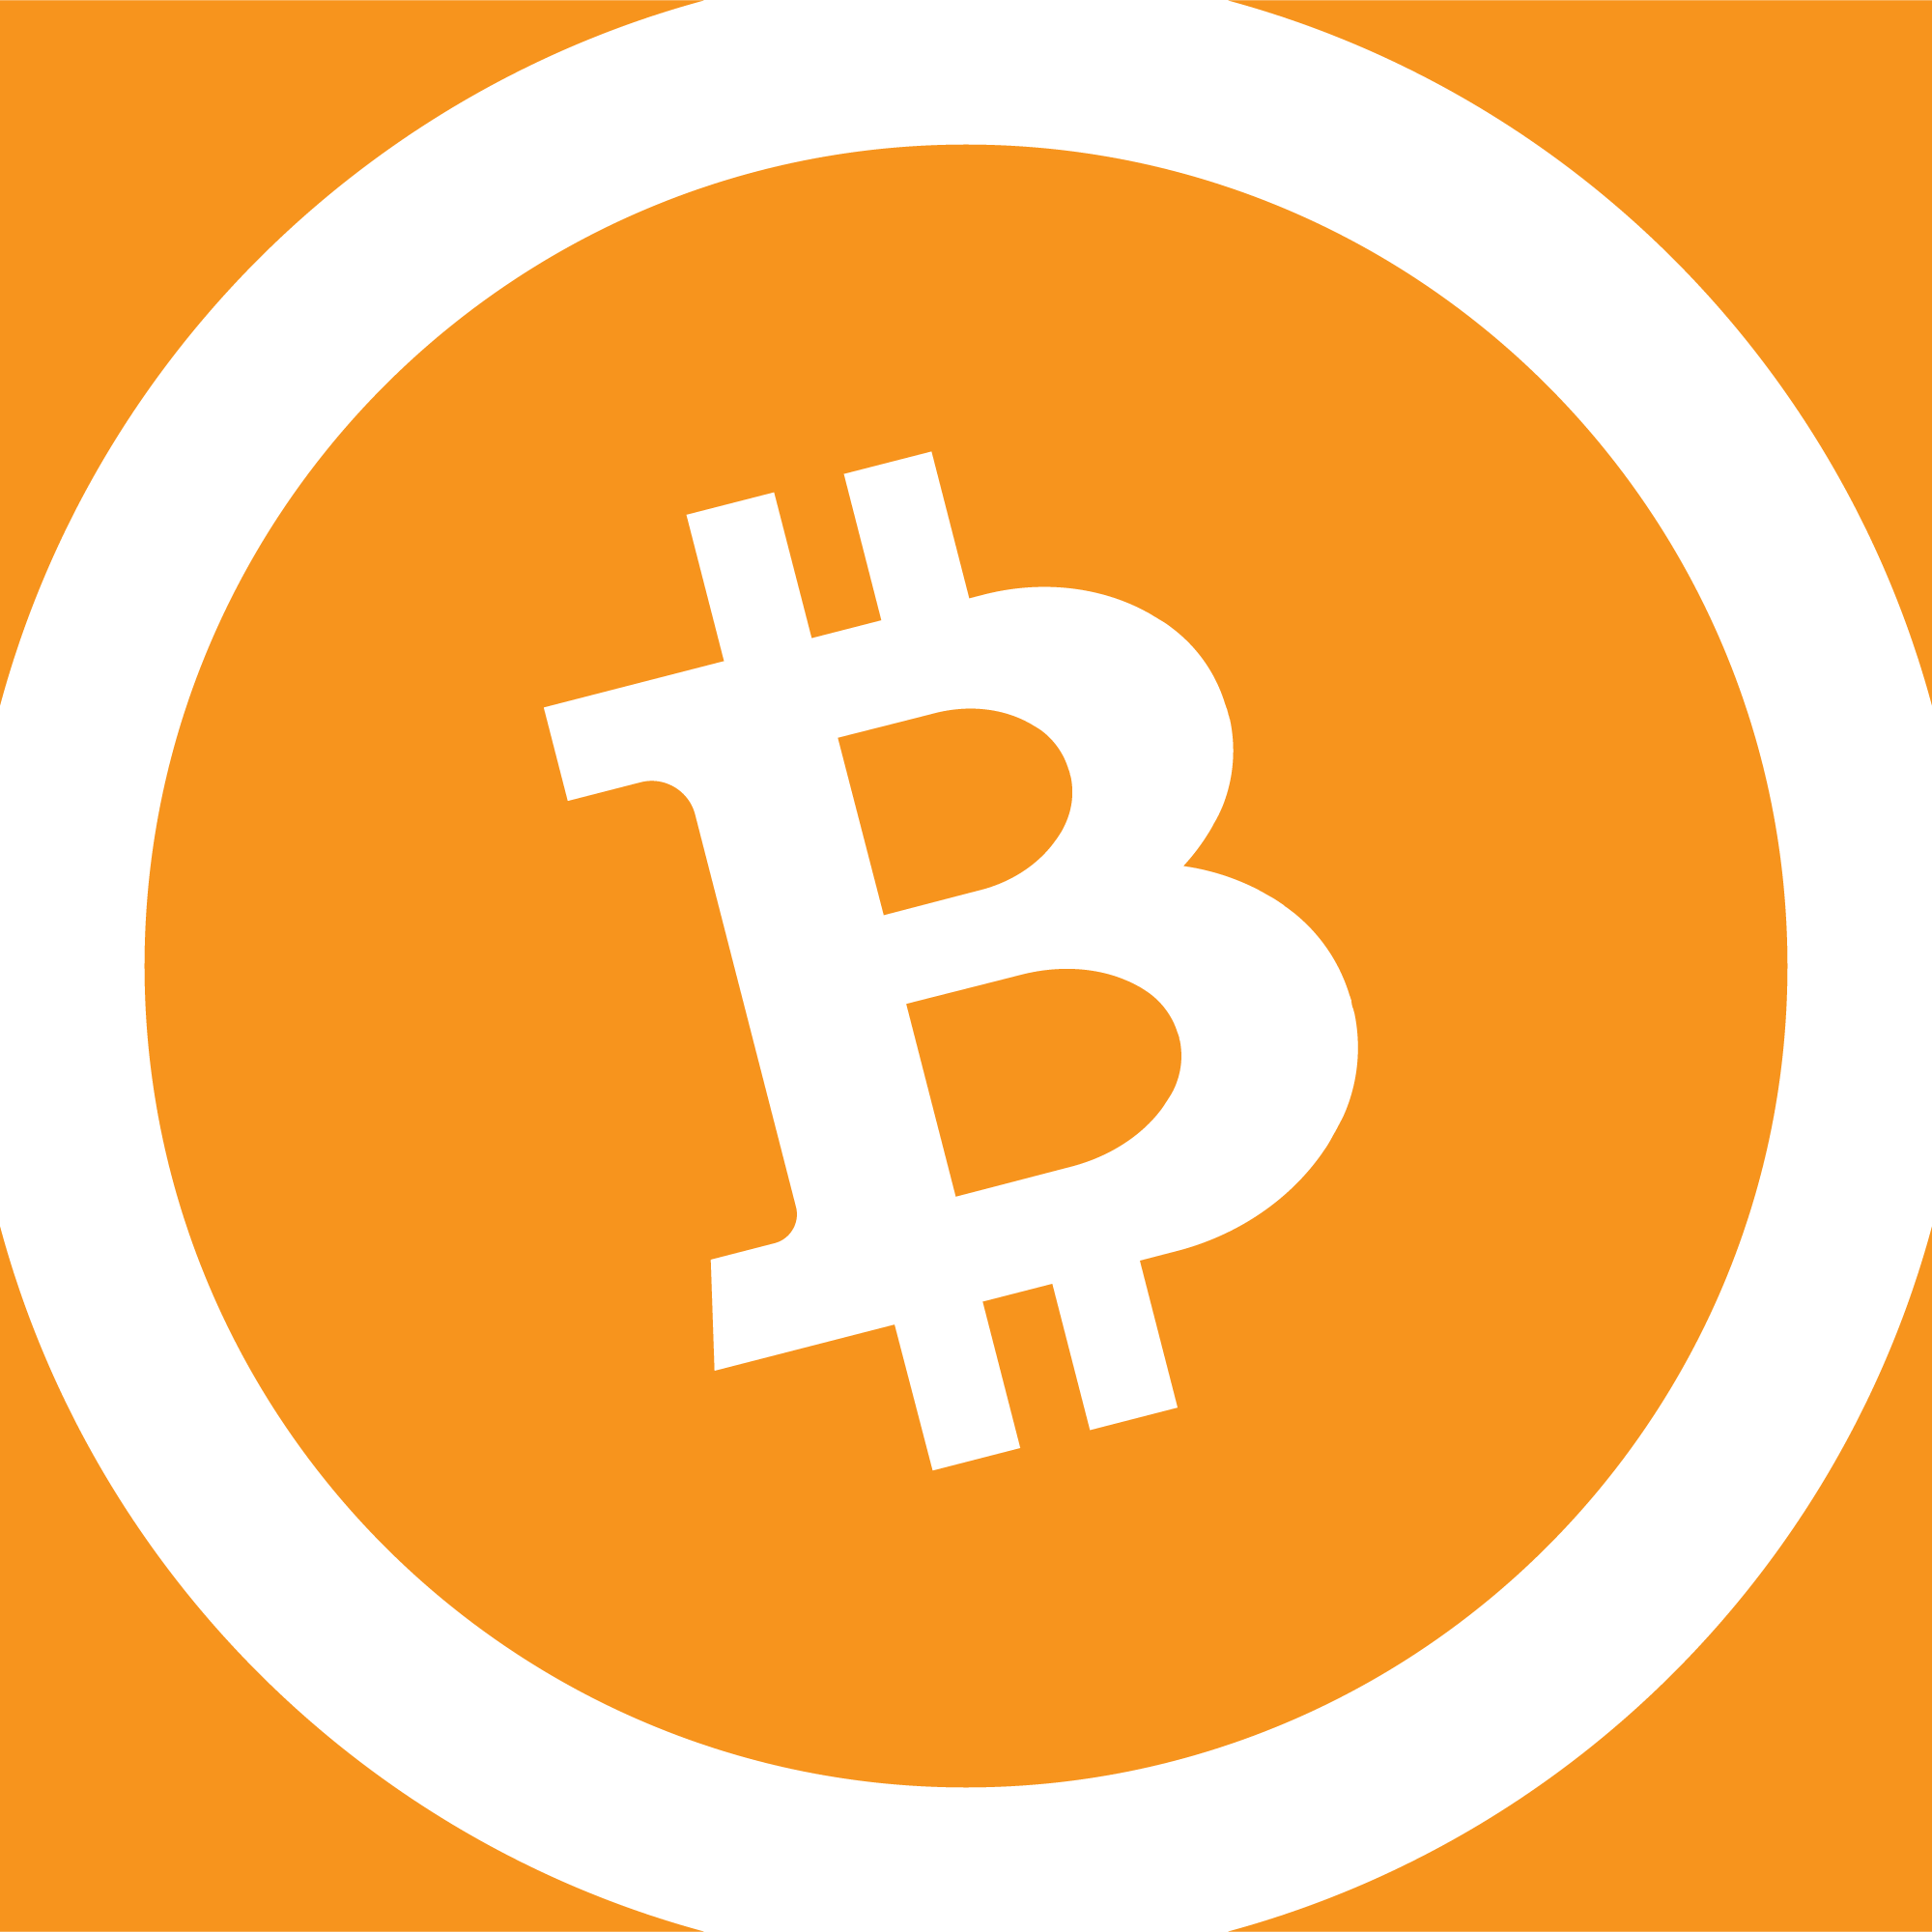 Crypto currency eventsdates for bitconnect bcc kryptocal stopboris Gallery